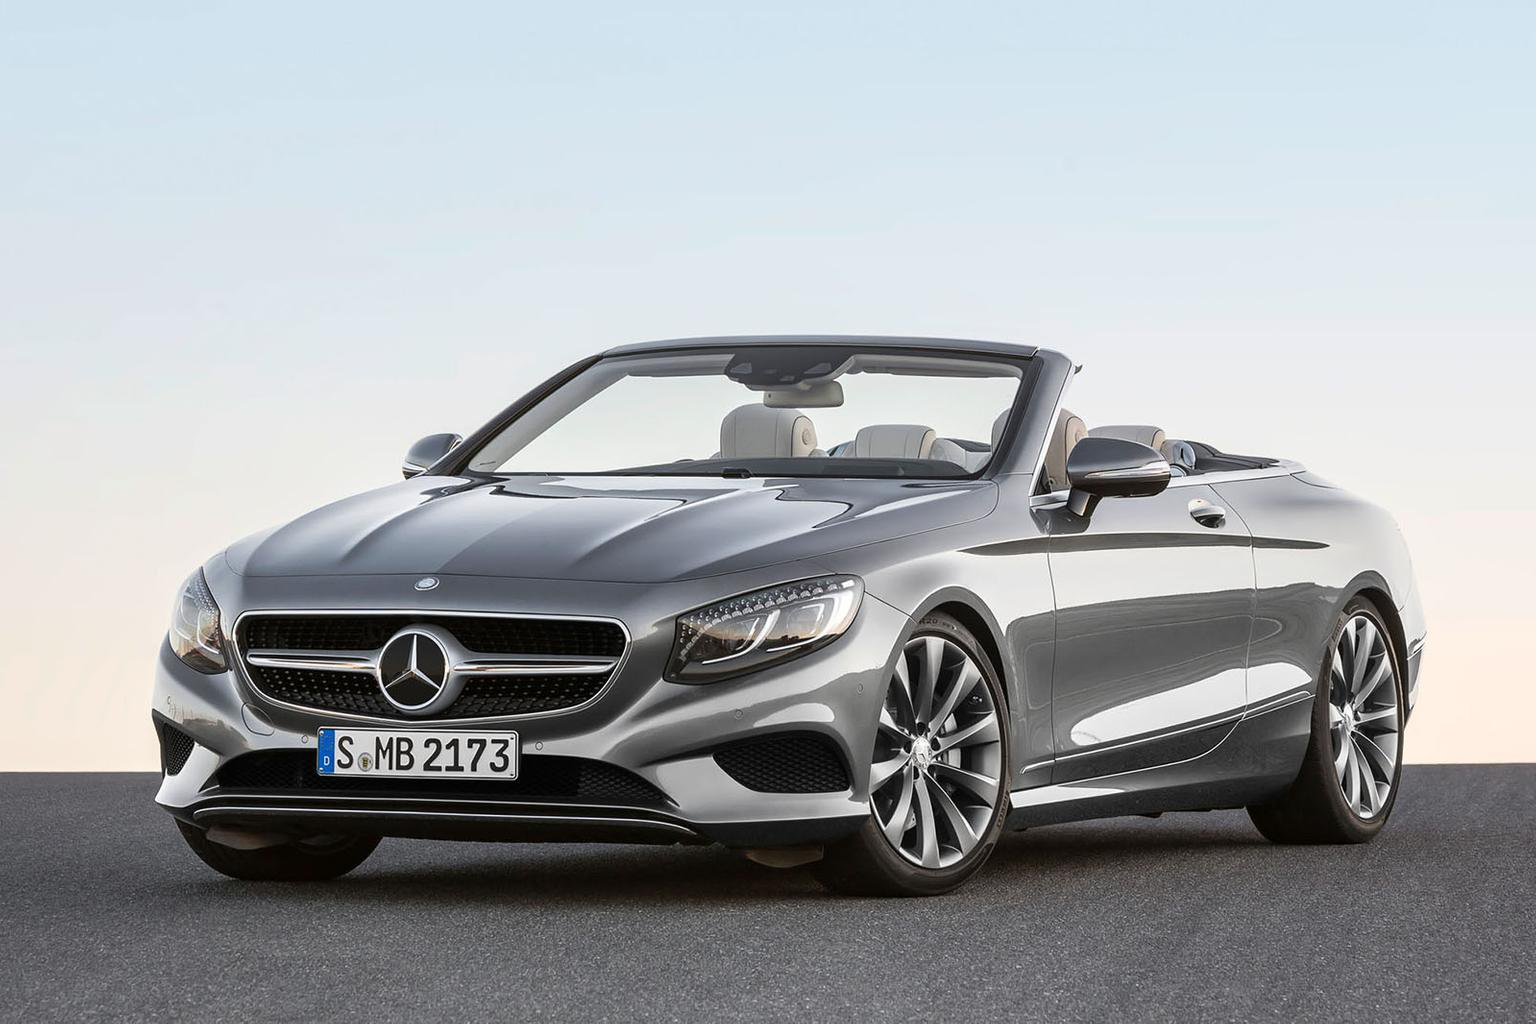 2016 Mercedes-Benz S-Class Cabriolet pricing announced